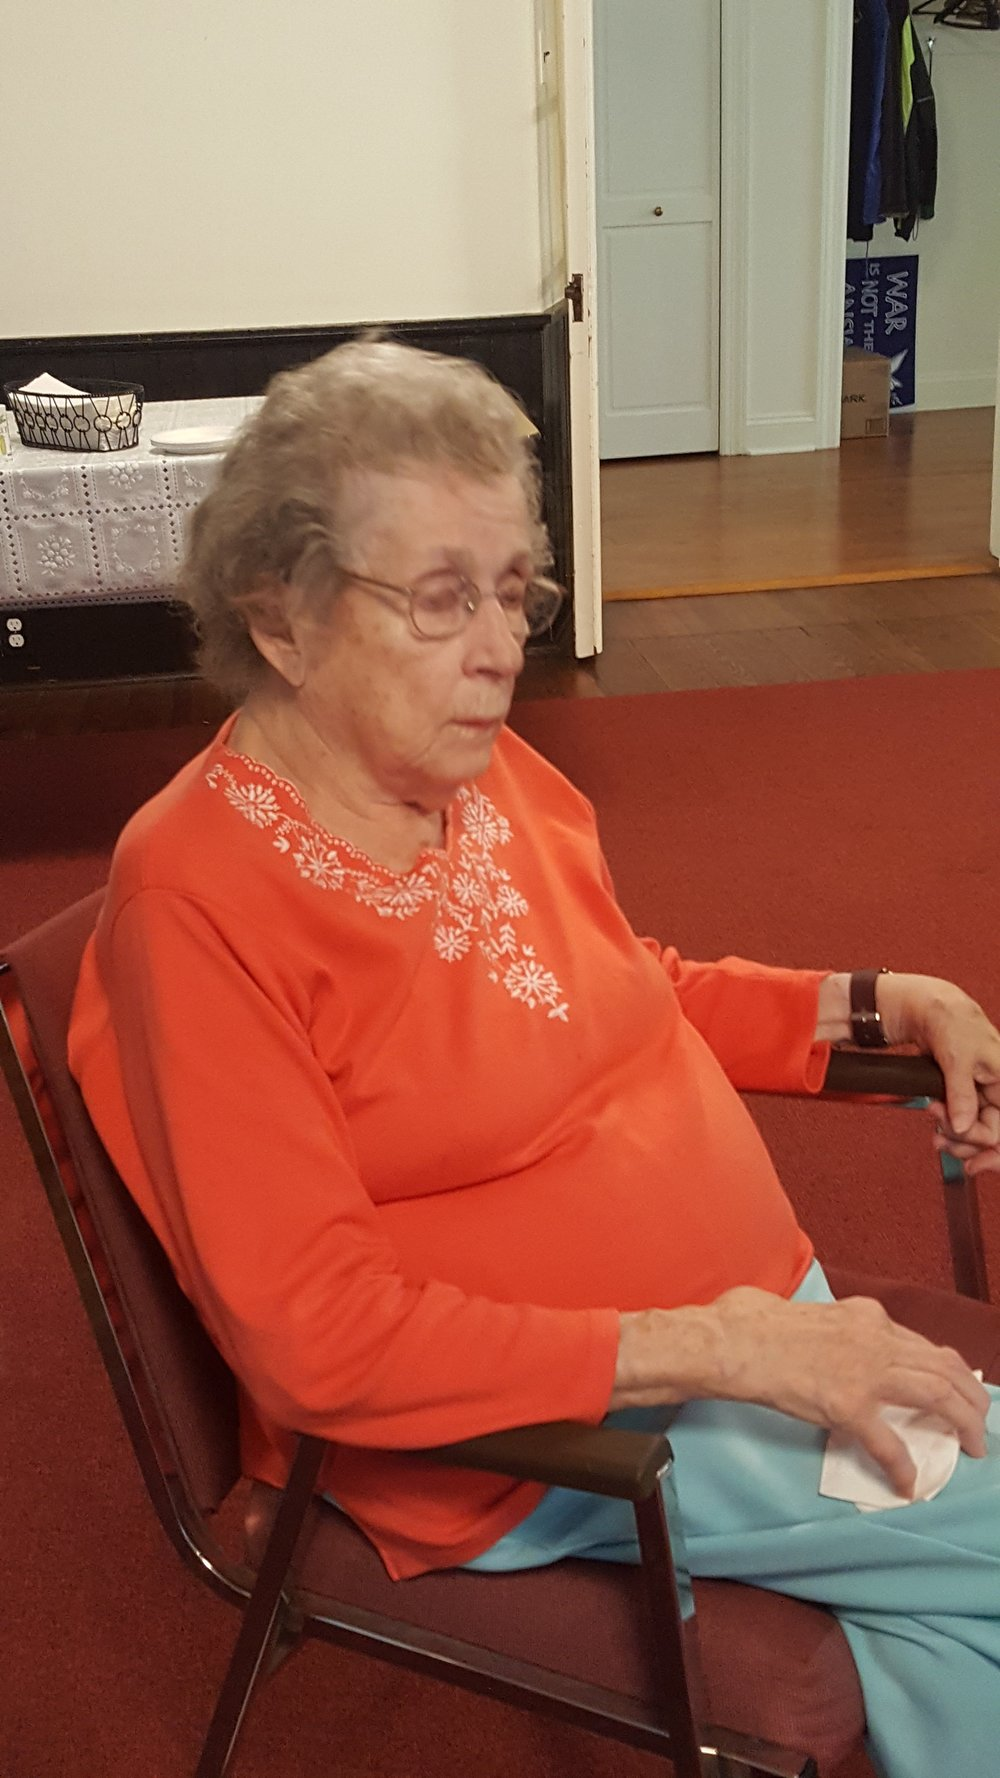 Jean spoke of her tradition of prayer and some of the favorite prayers she has learned and uses.